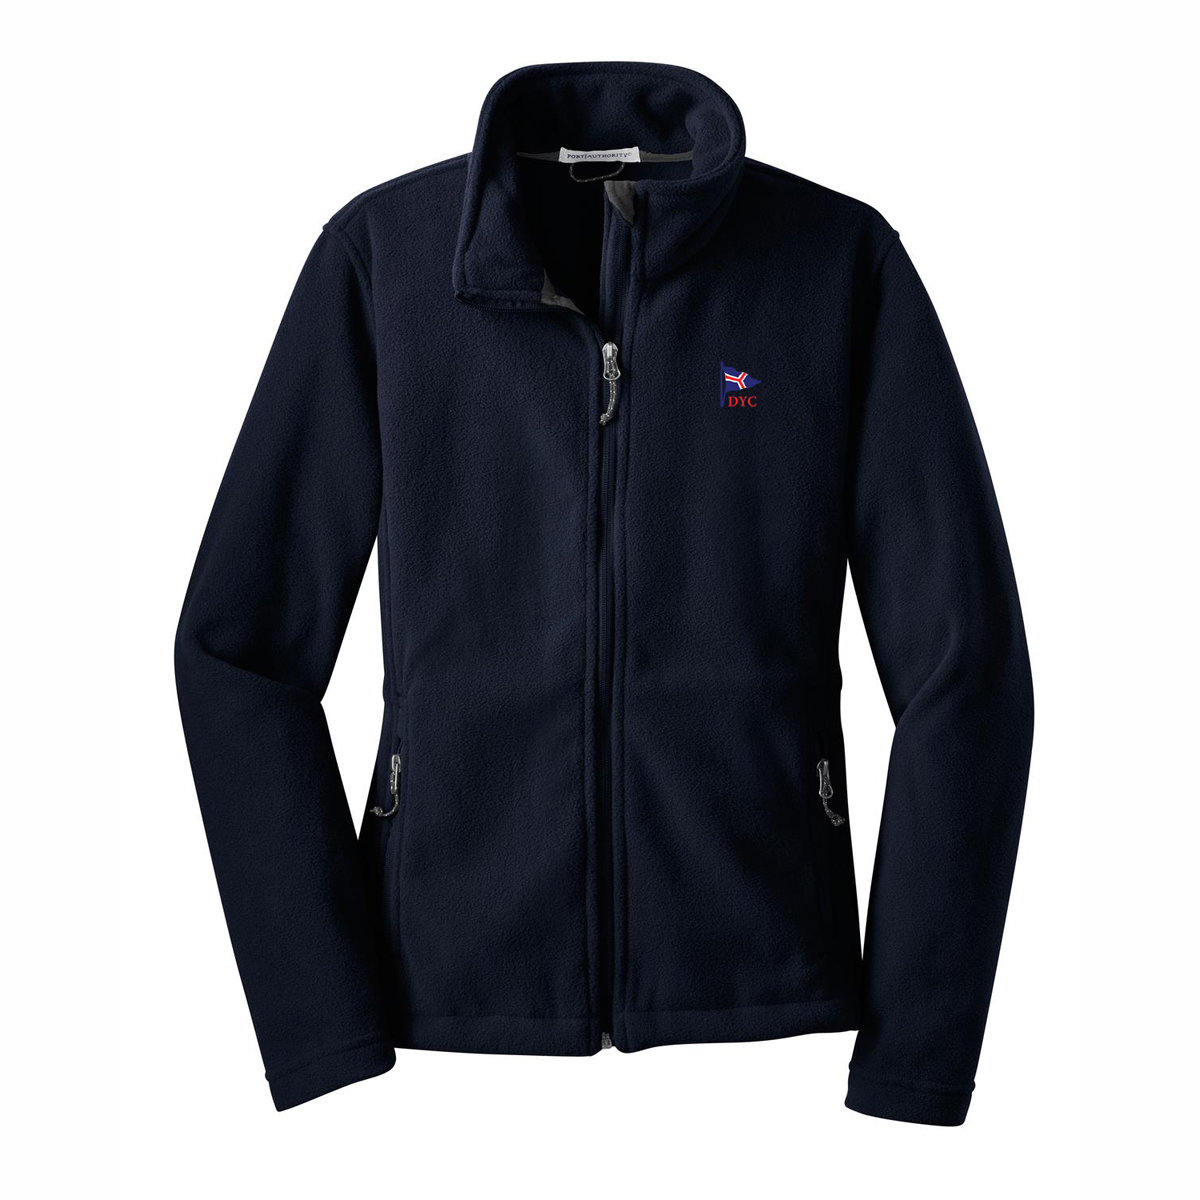 Devon Yacht Club - Women's Value Fleece Jacket